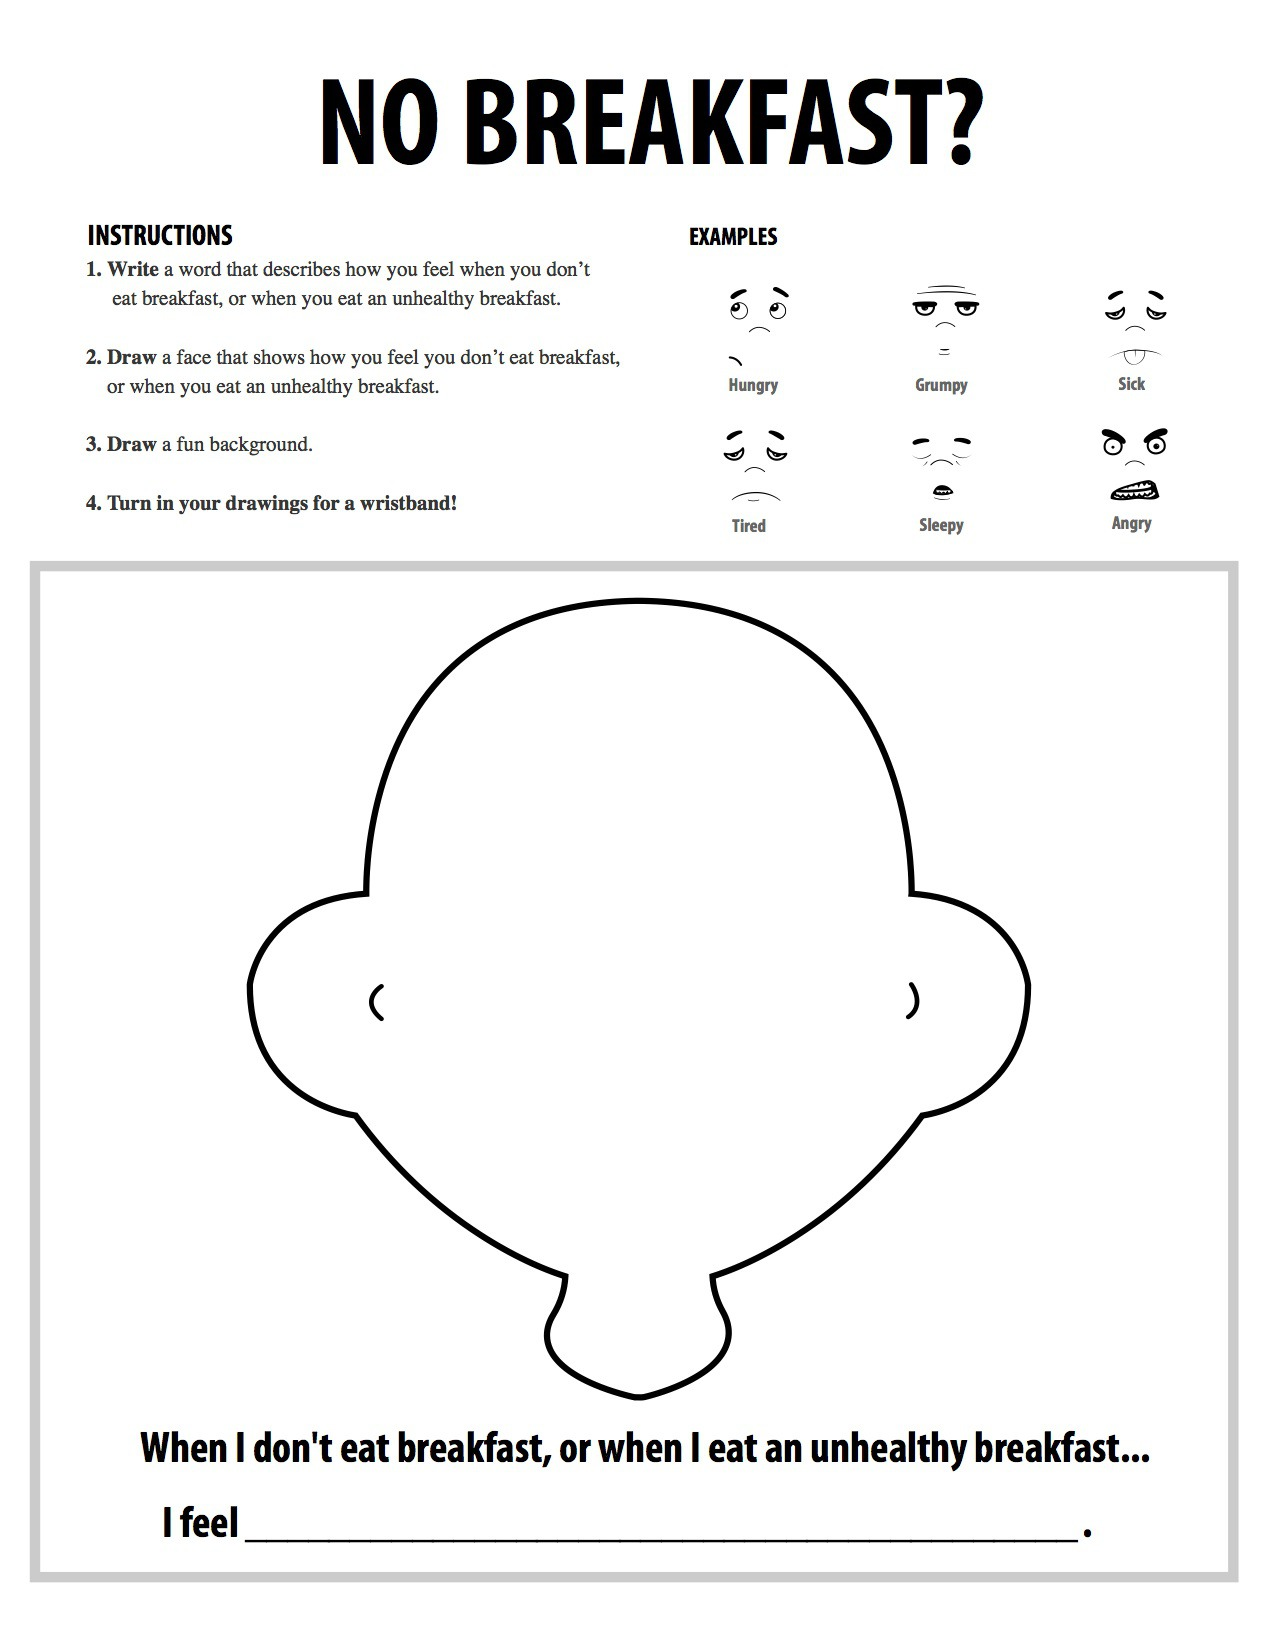 Worksheets 2nd Grade Health Worksheets keeping healthy worksheets for grade 5 templates and health nutrition have fun teaching